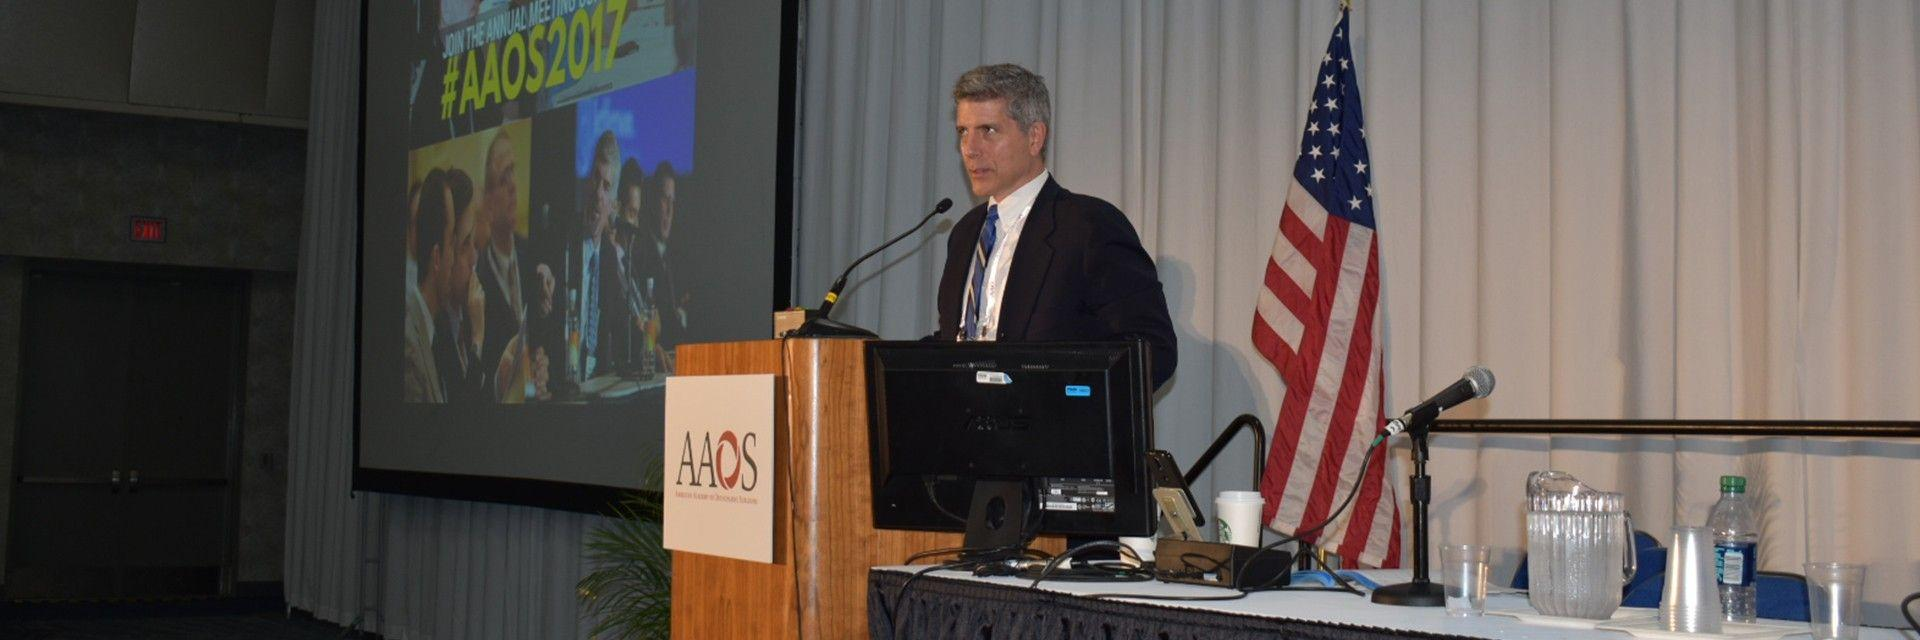 AAOS: Dr. Vaccaro, Program Chair